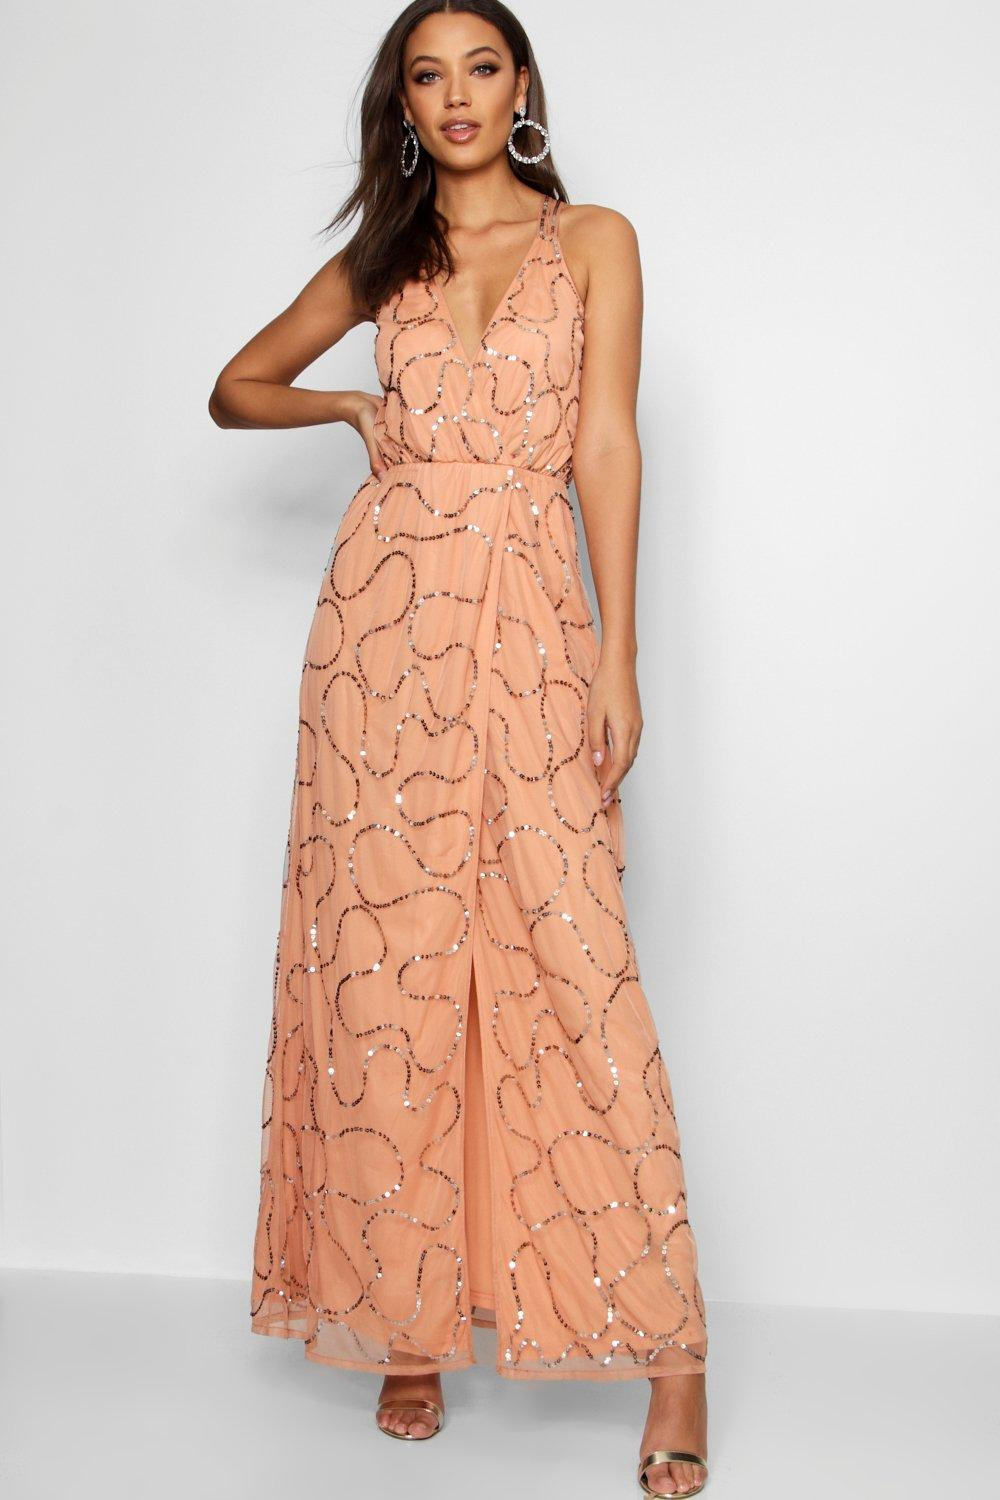 Exclusive Online The Cheapest Online Boohoo Tall Boutique Wrap Sequin Maxi Dress Na0dFkeBDl